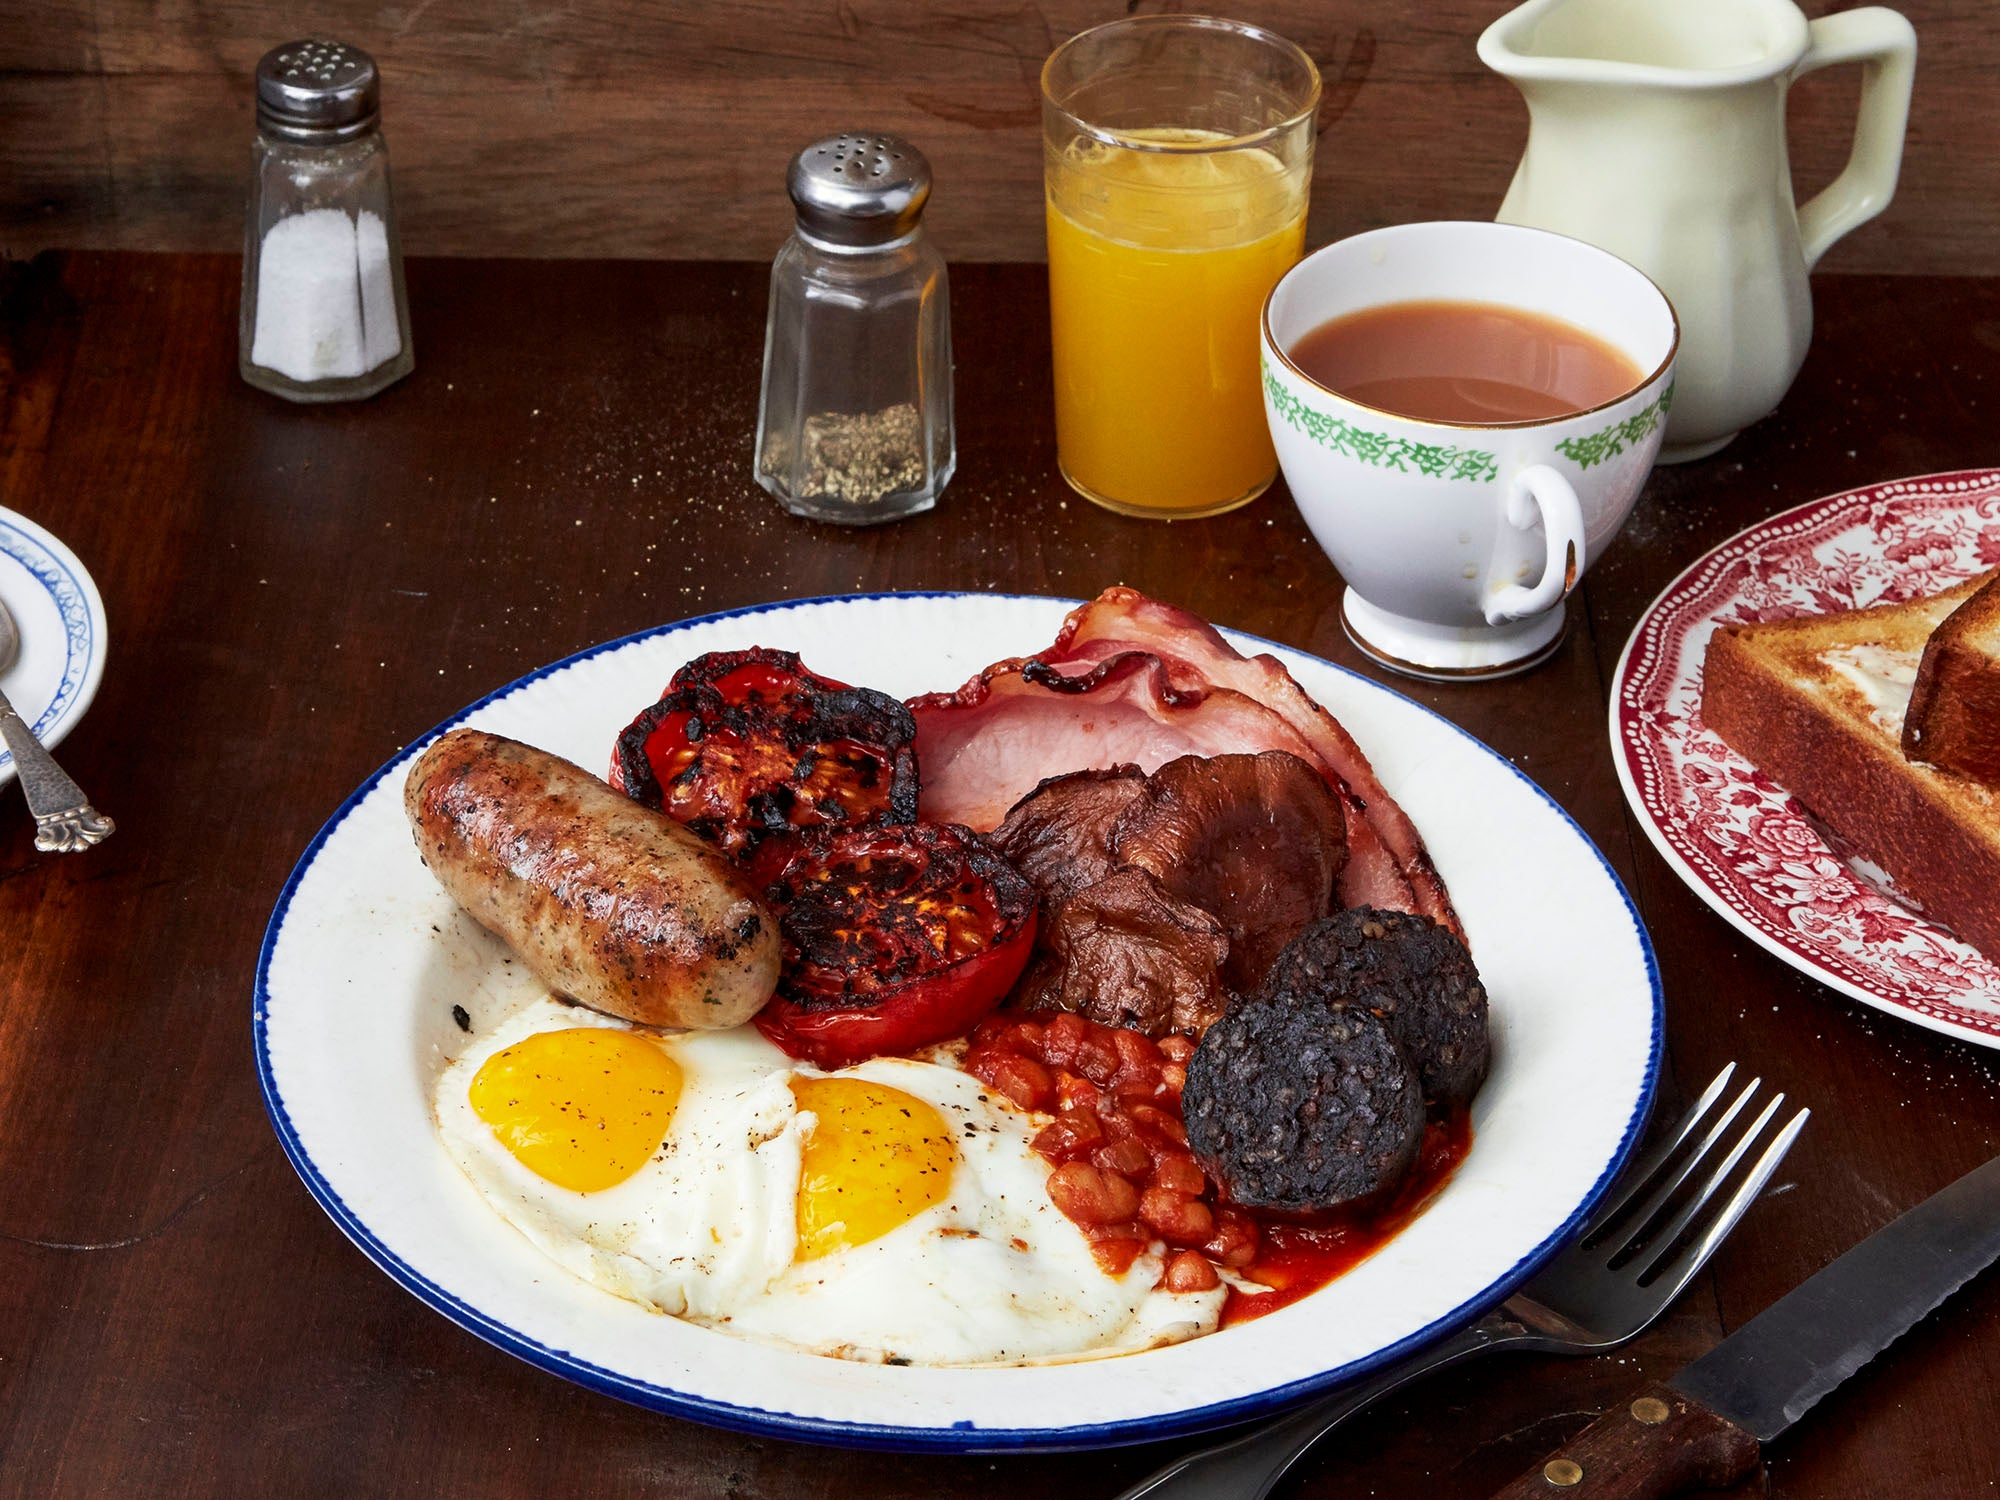 Full English Breakfast with Cumberland Sausage